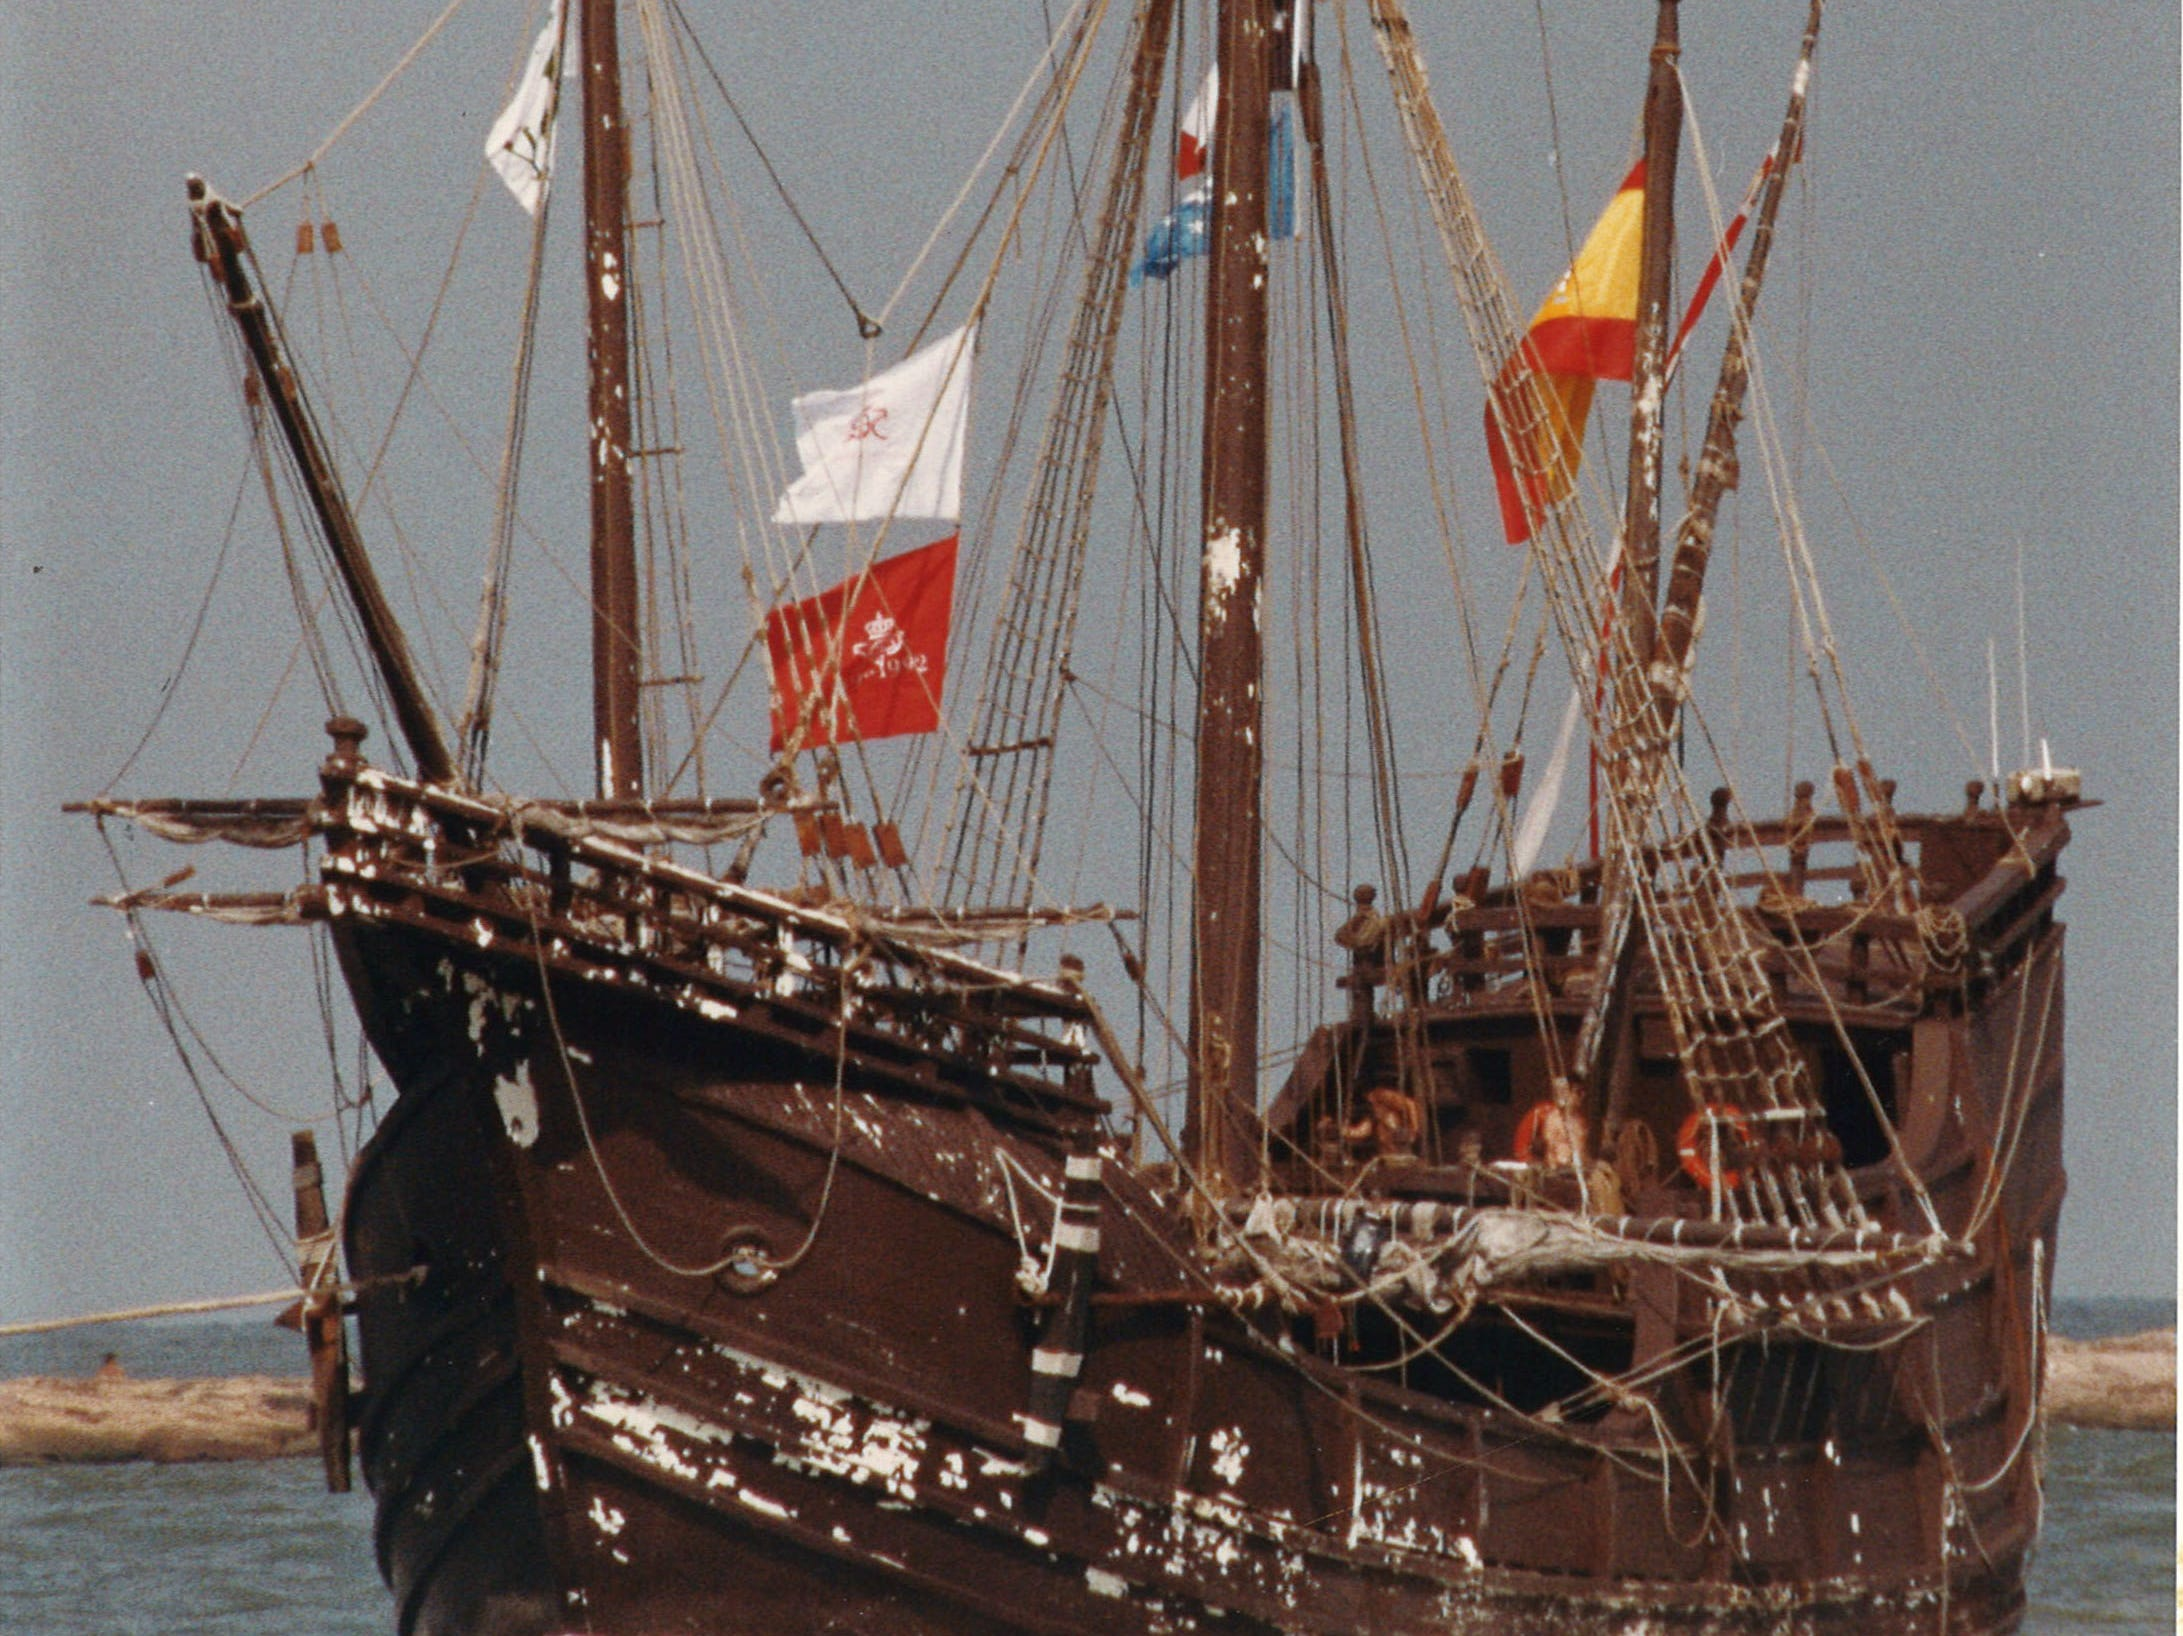 The Santa Maria, one of the three replica Columbus ships, sails in Port Aransas on May 30, 1993. The paint was badly chipped.